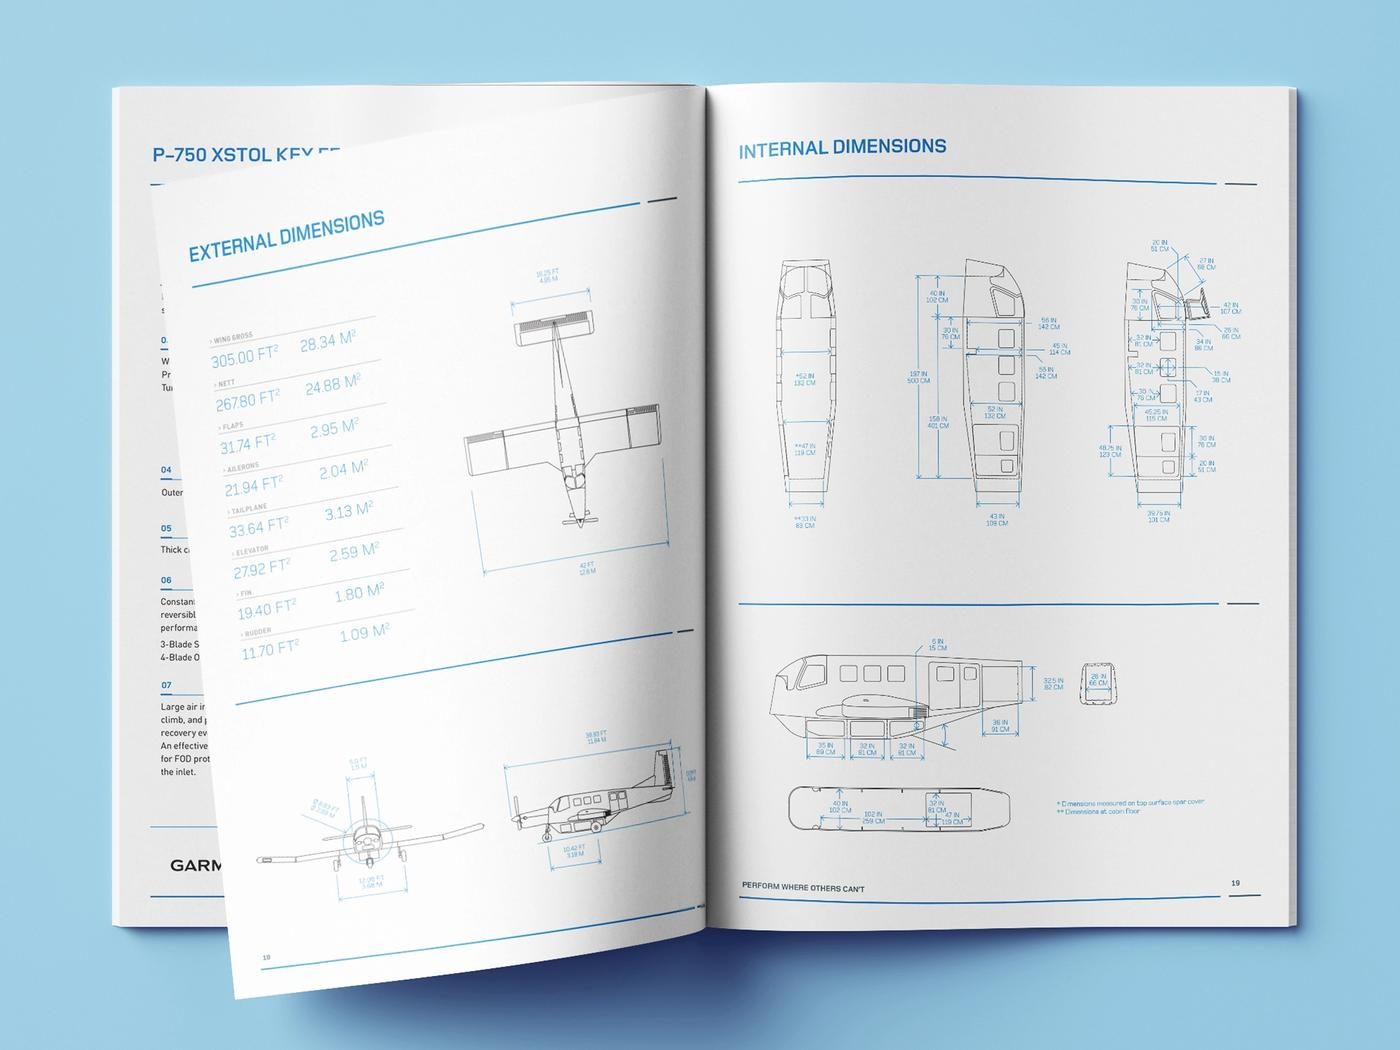 Pacific Aerospace profile document diagrams page